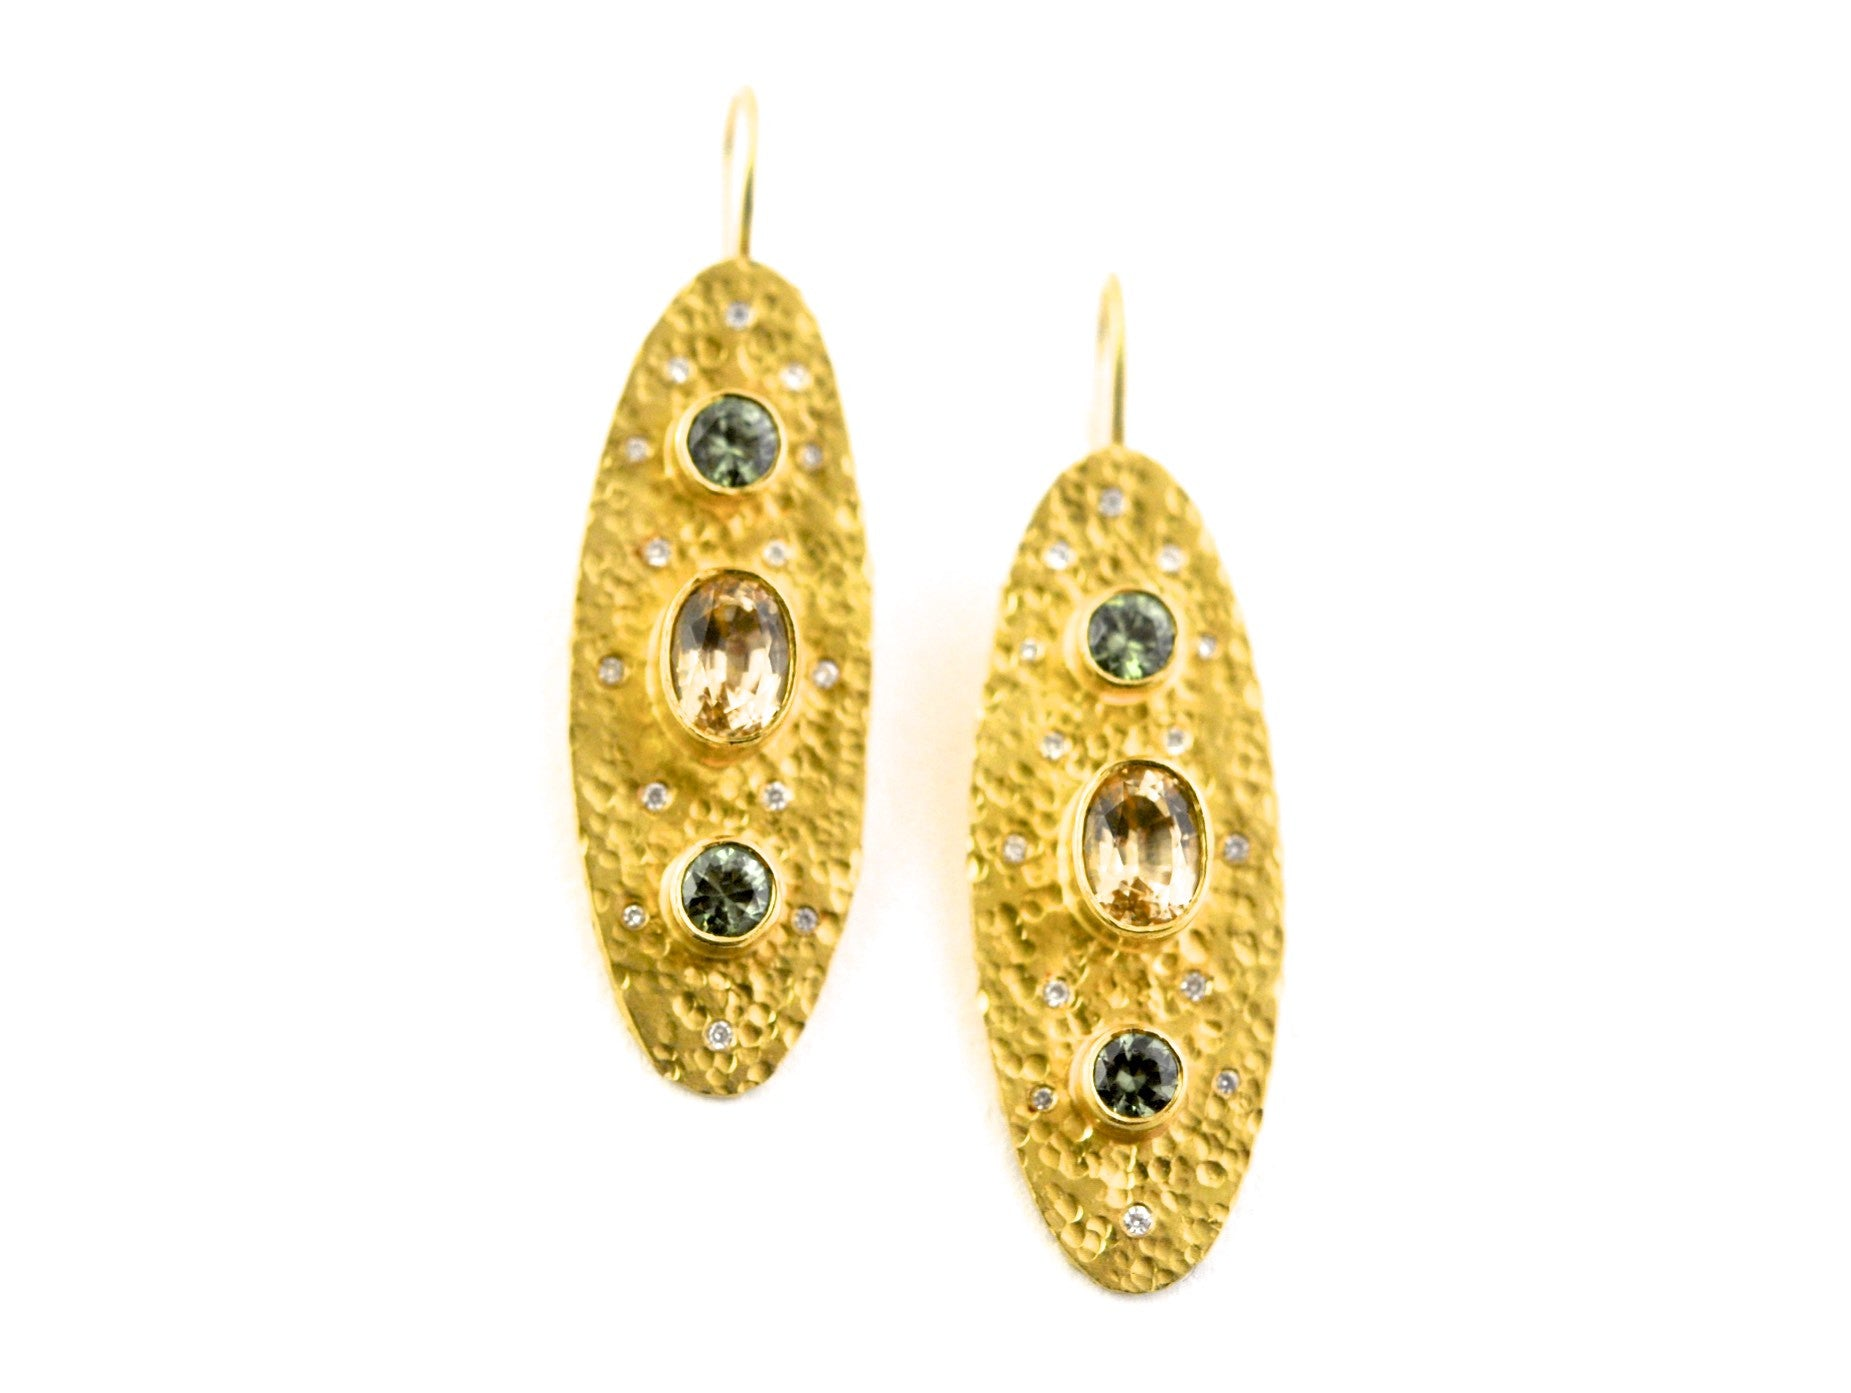 earrings / gold hammered 22k + Demantoid Garnets + Topaz + Diamonds